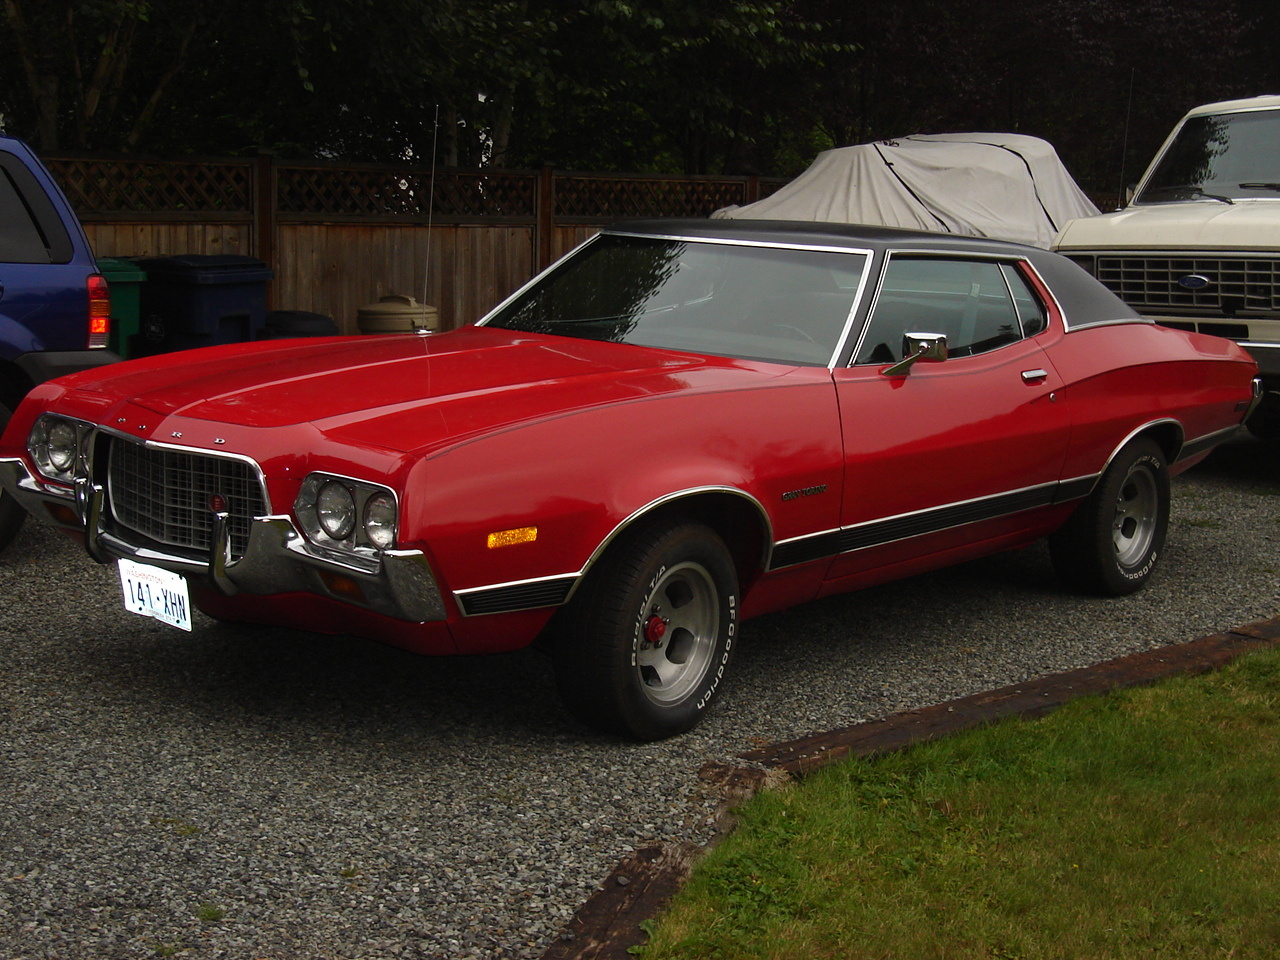 Ford Torino Questions - Looking for a 1972 Ford Gran Torino